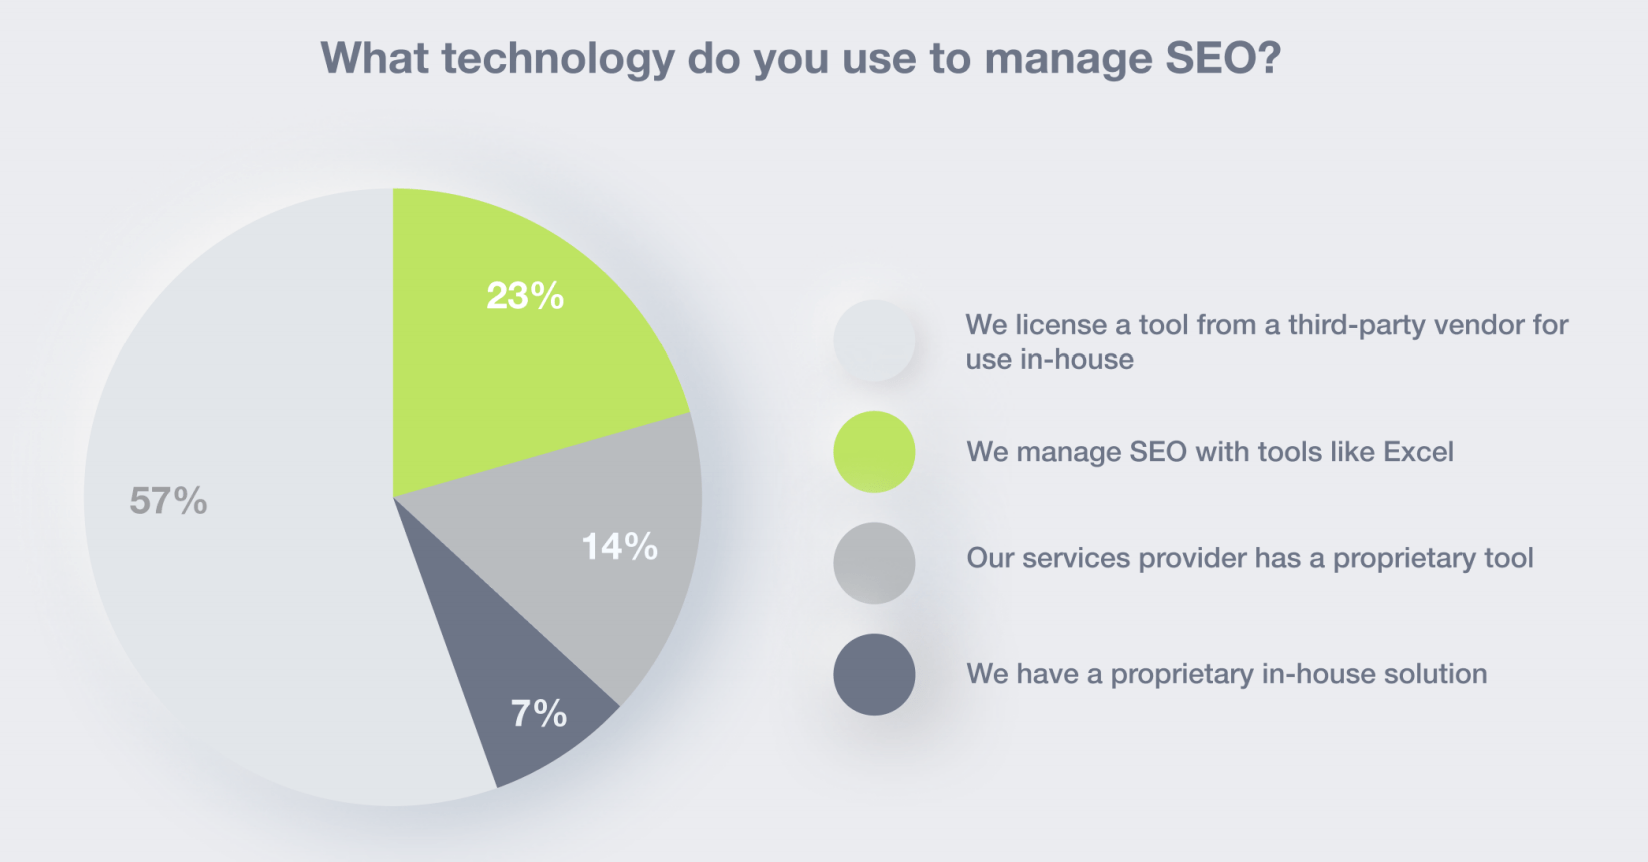 SEO technology usage